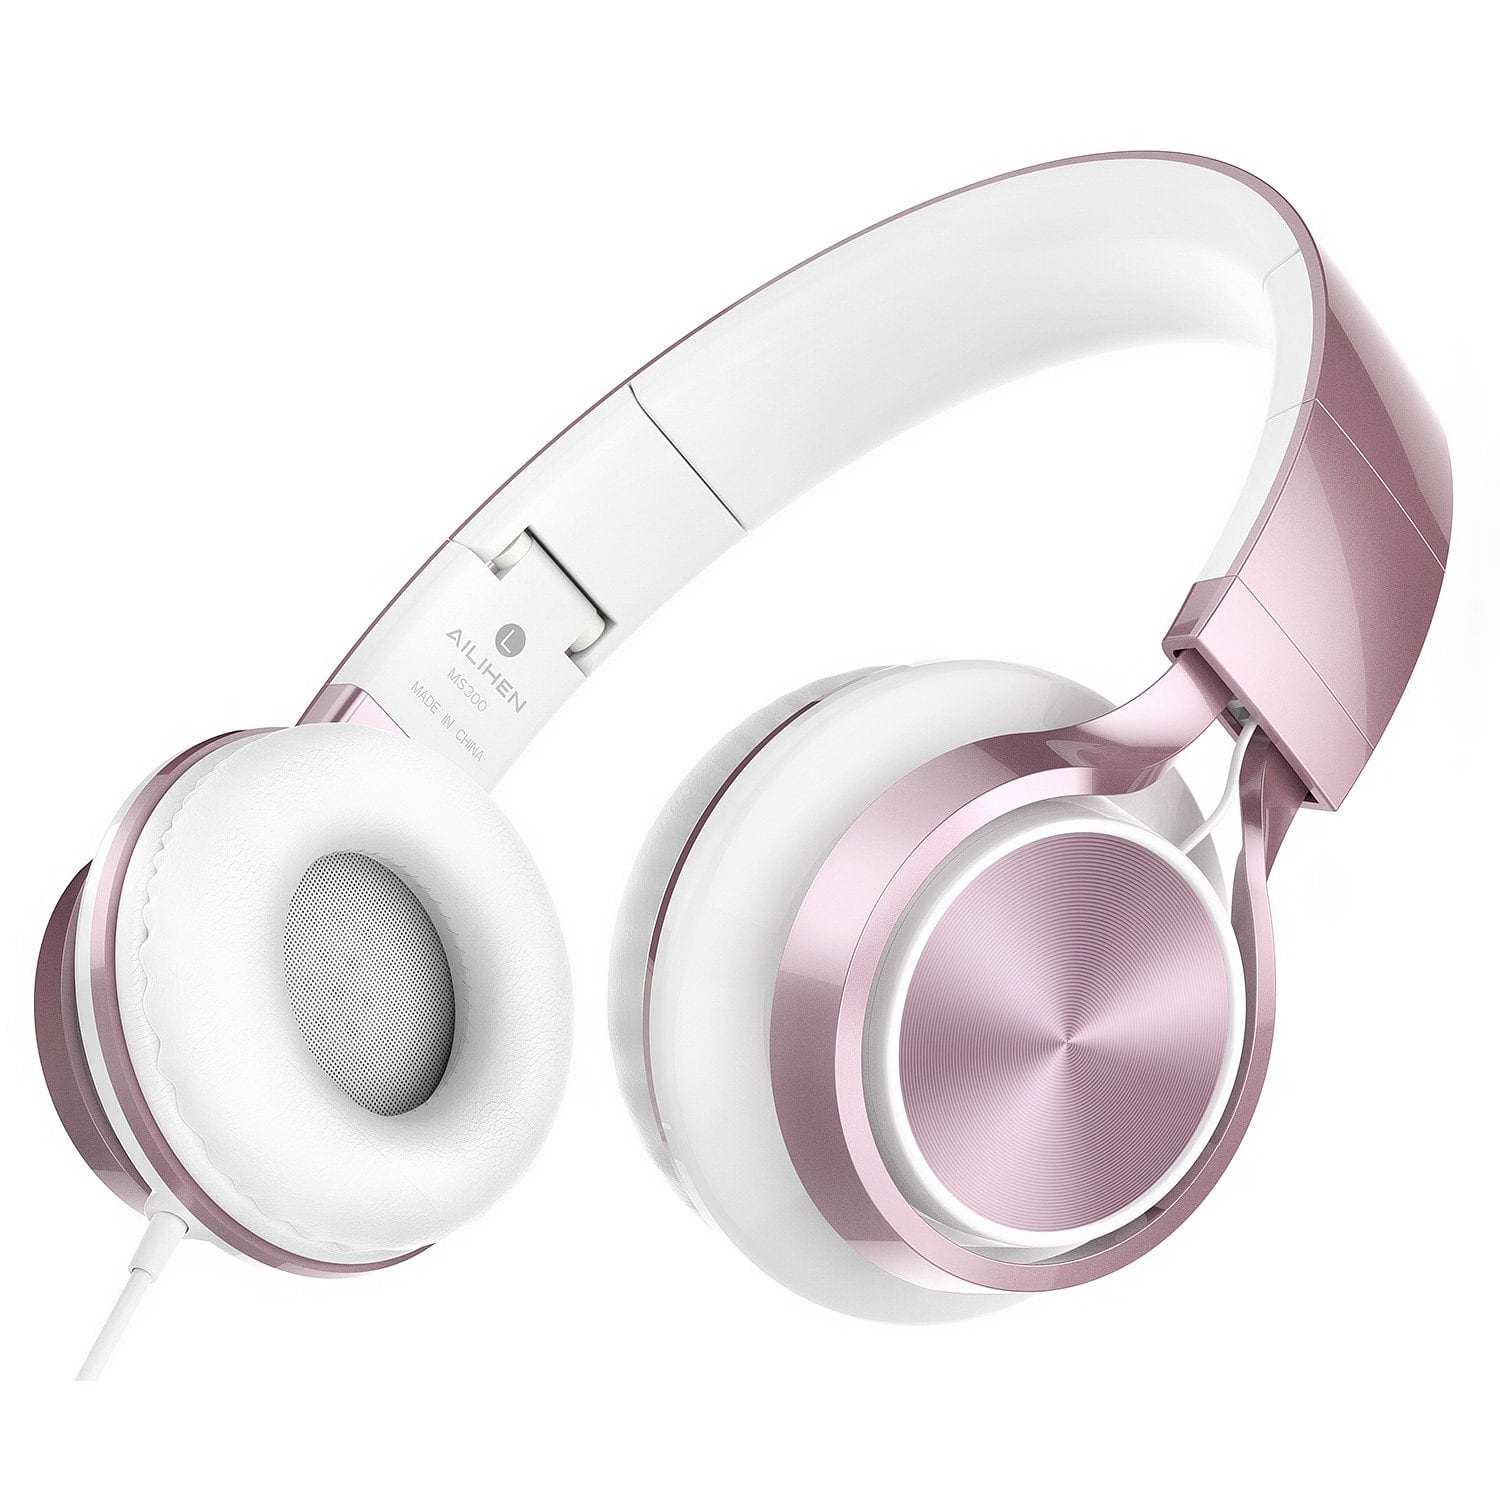 MS300 Stereo Folding Wired Headphones $9.99